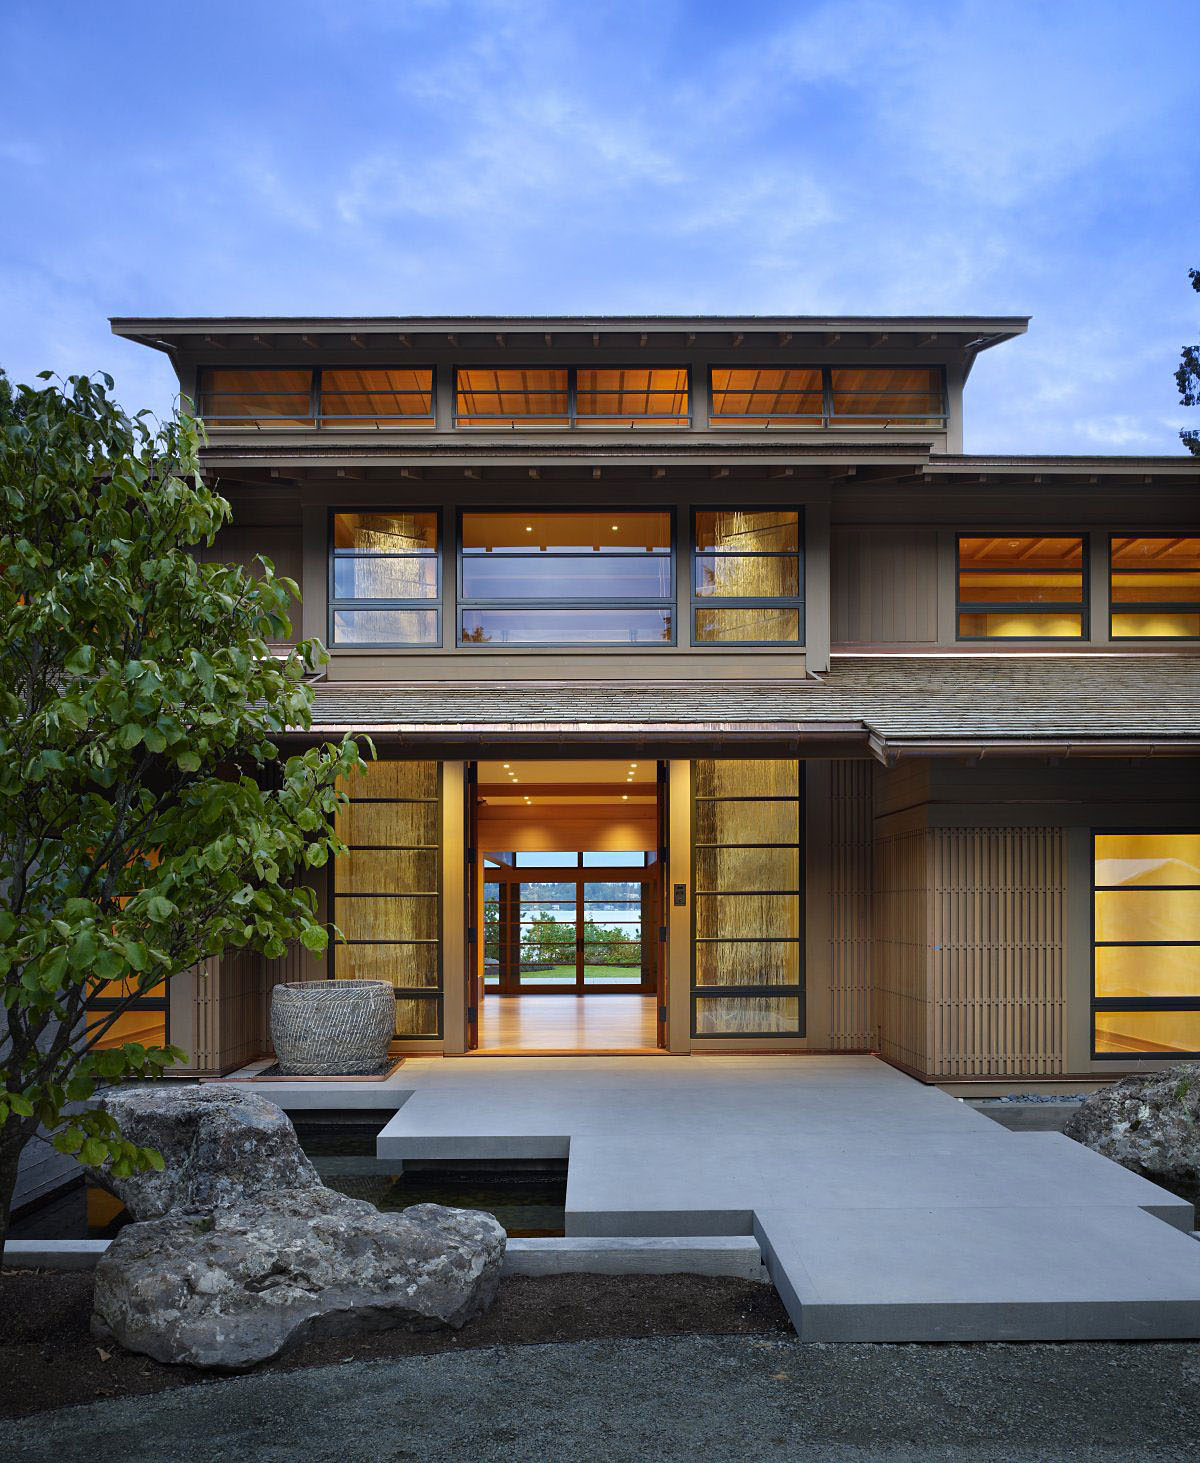 Modern Architecture Home Design: Contemporary House In Seattle With Japanese Influence